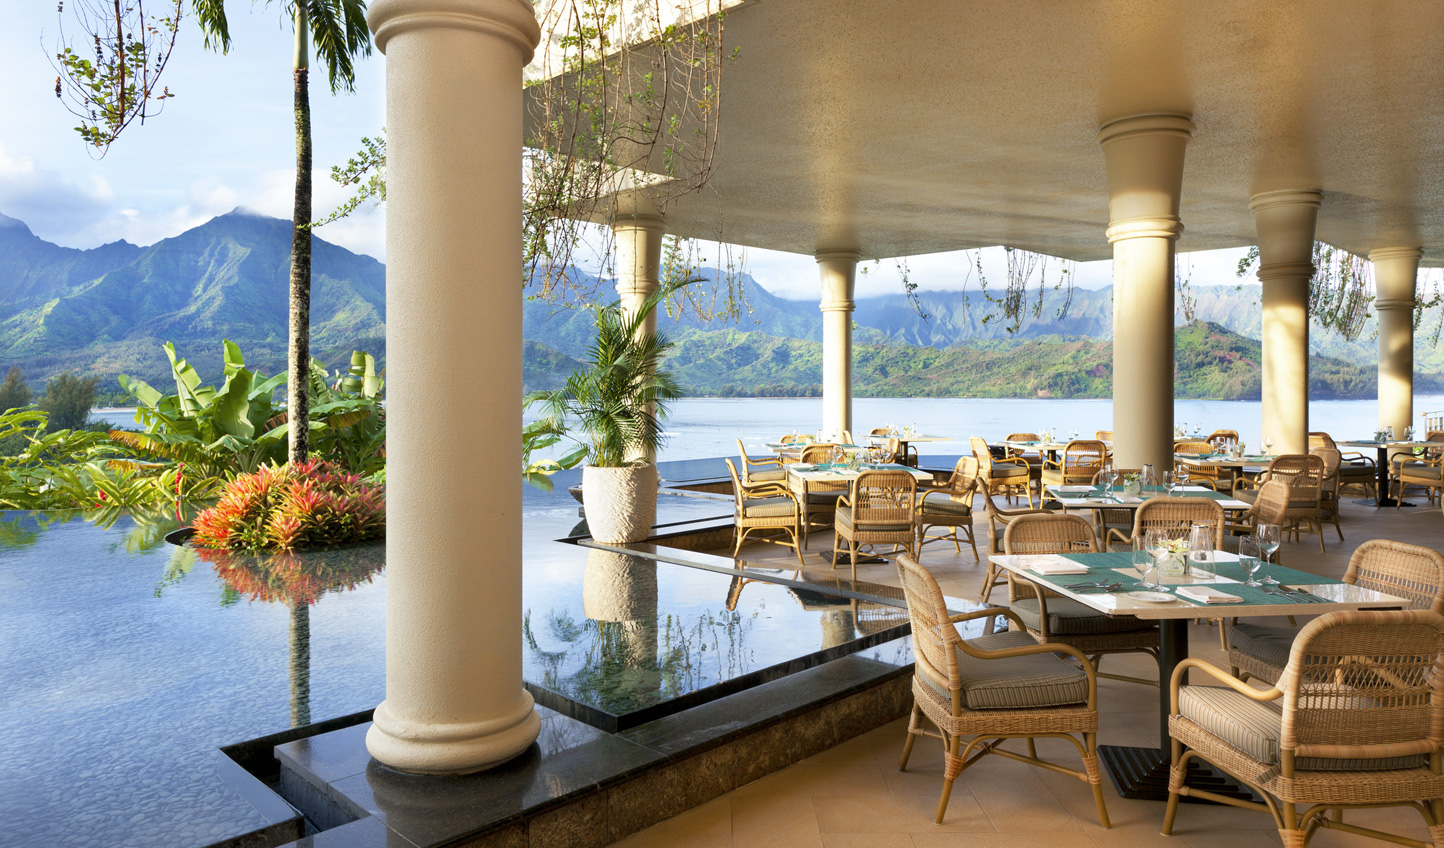 Relax in the stylish surroundings of the Princeville Resort